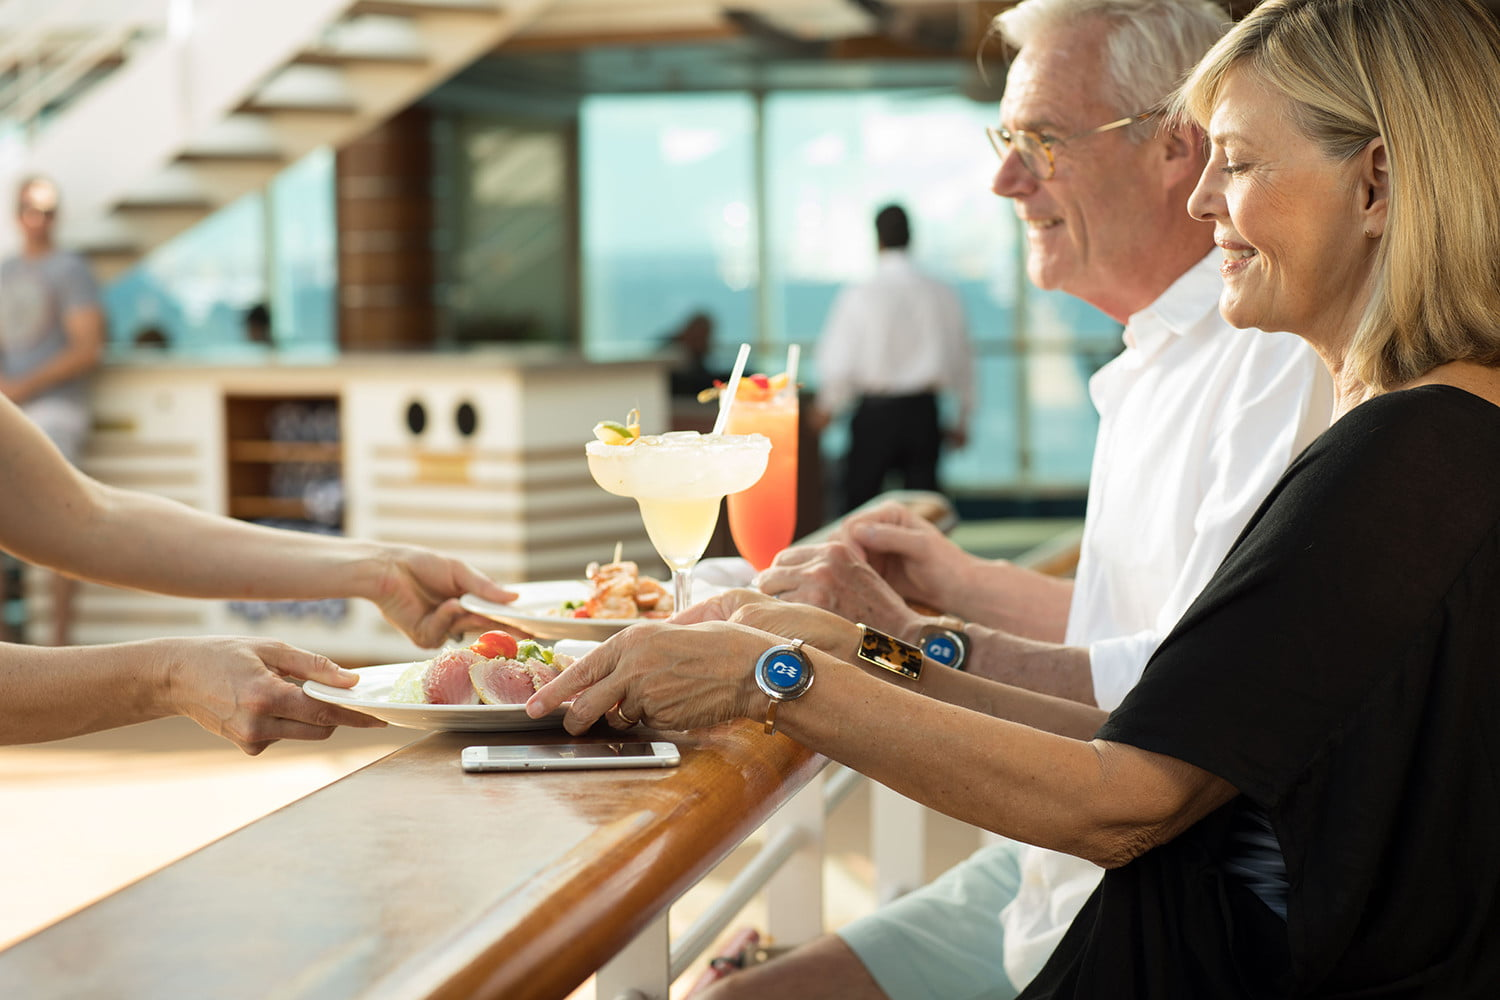 Cruise ships turn to wearable tech to create personalized